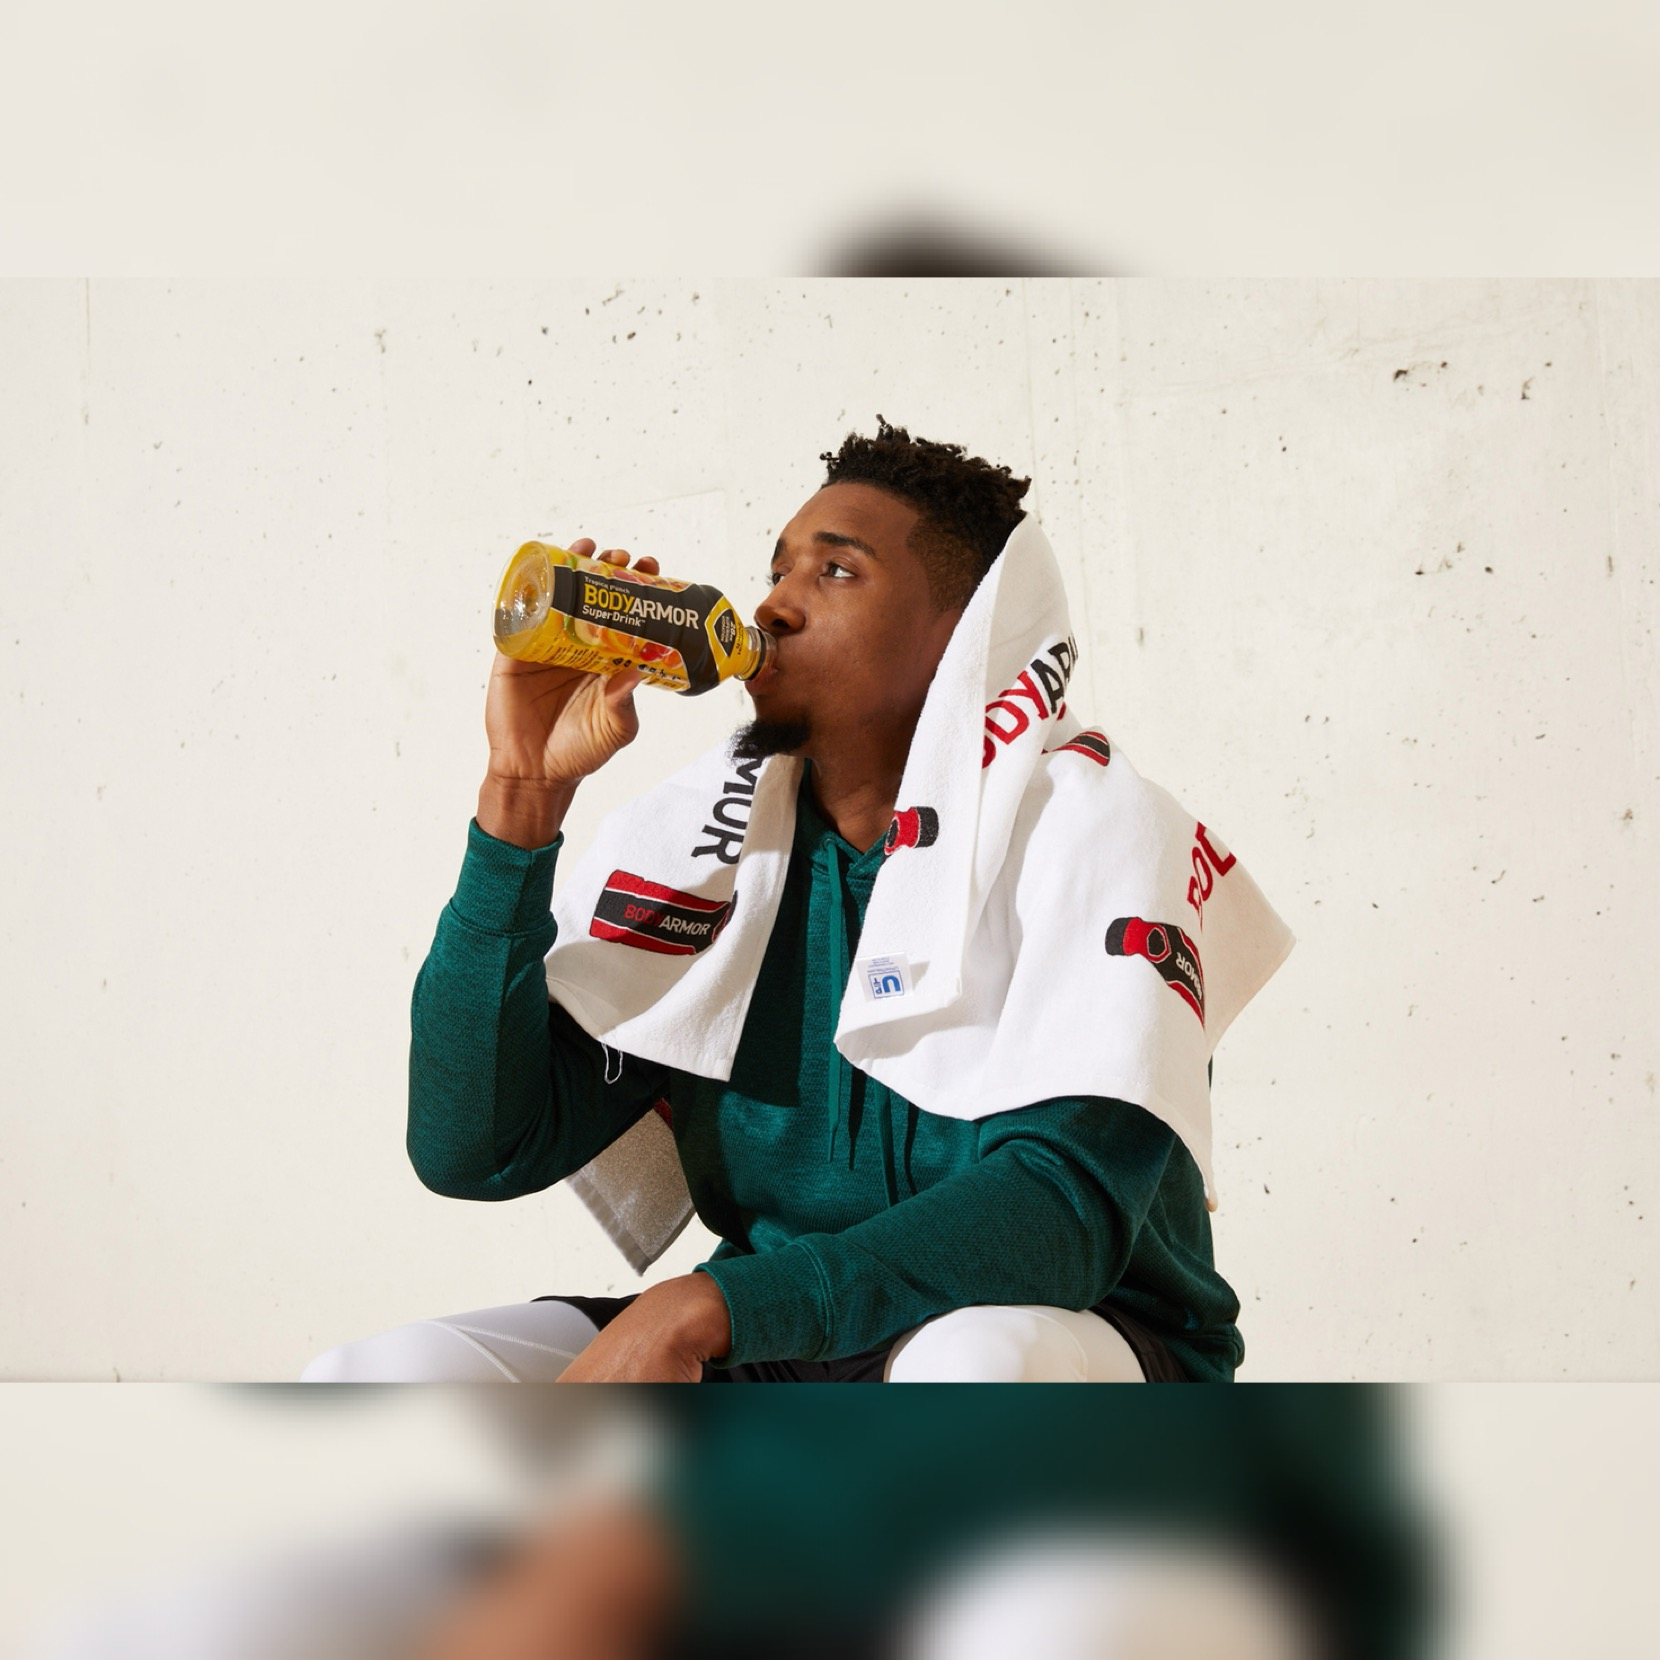 Photo of Donovan Mitchell by Bodyarmor for use by 360 Magazine